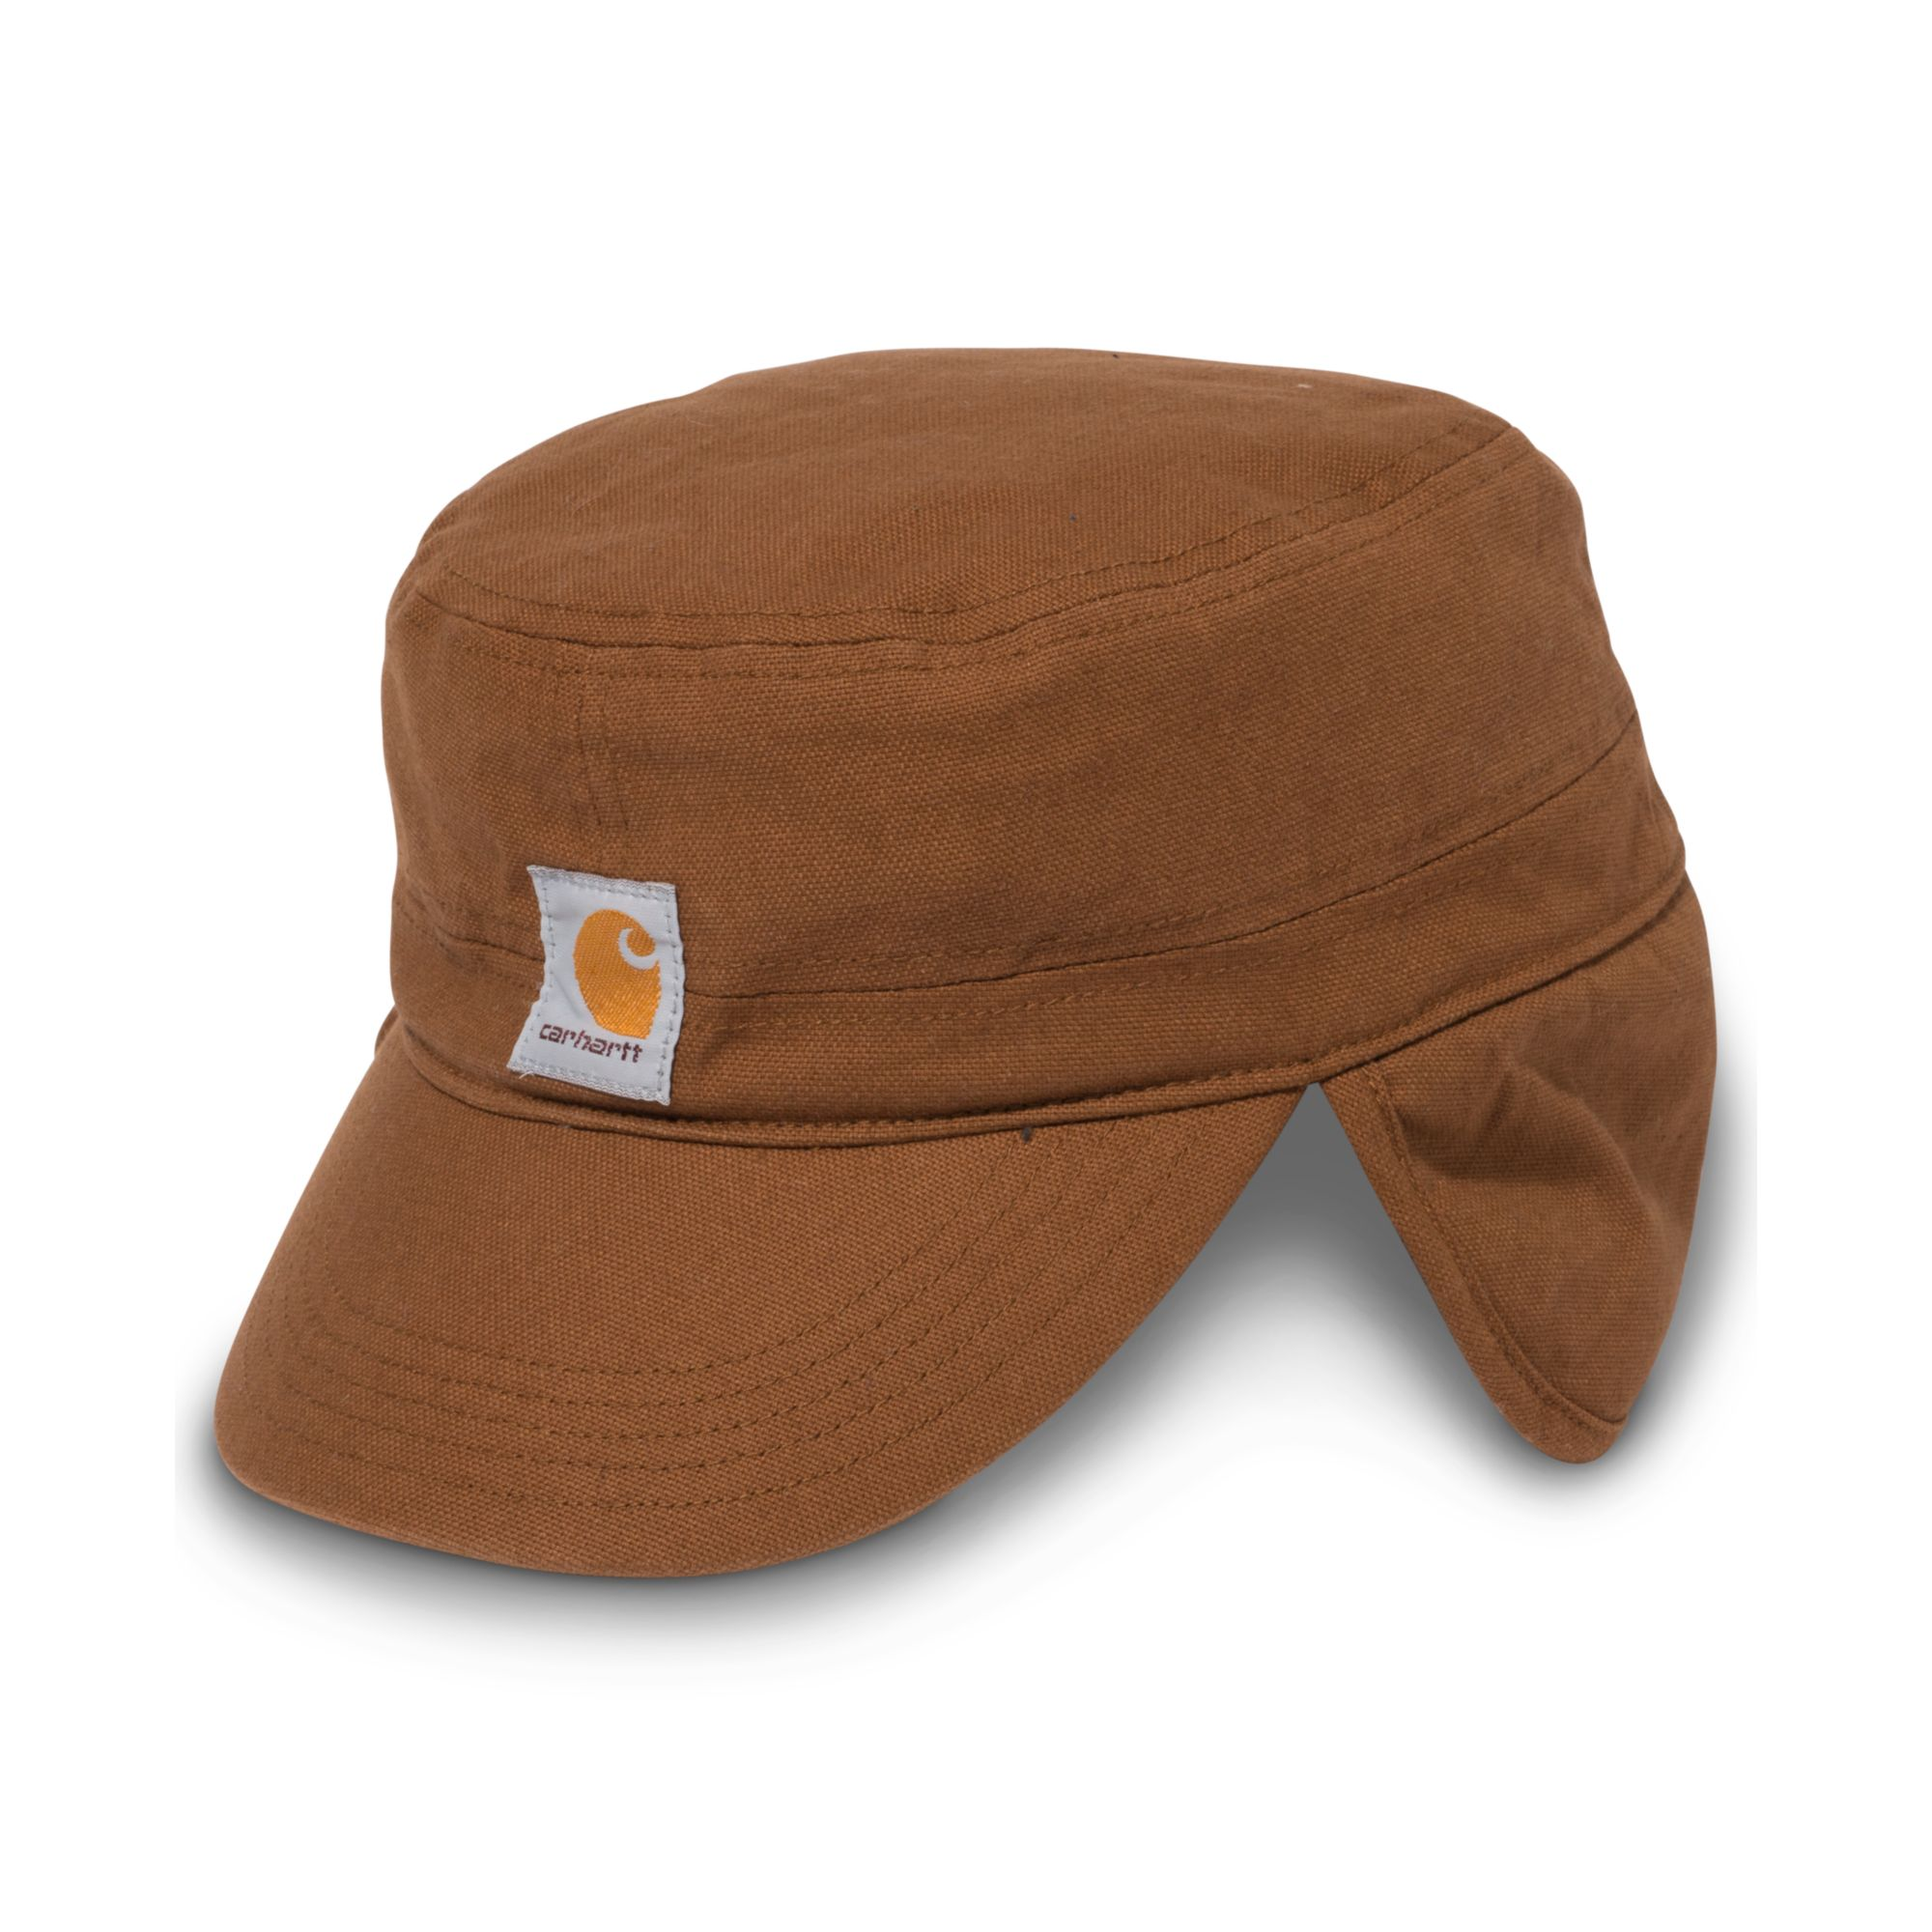 d1150ad6838 Lyst - Carhartt Jarvis Fleece Cap in Brown for Men